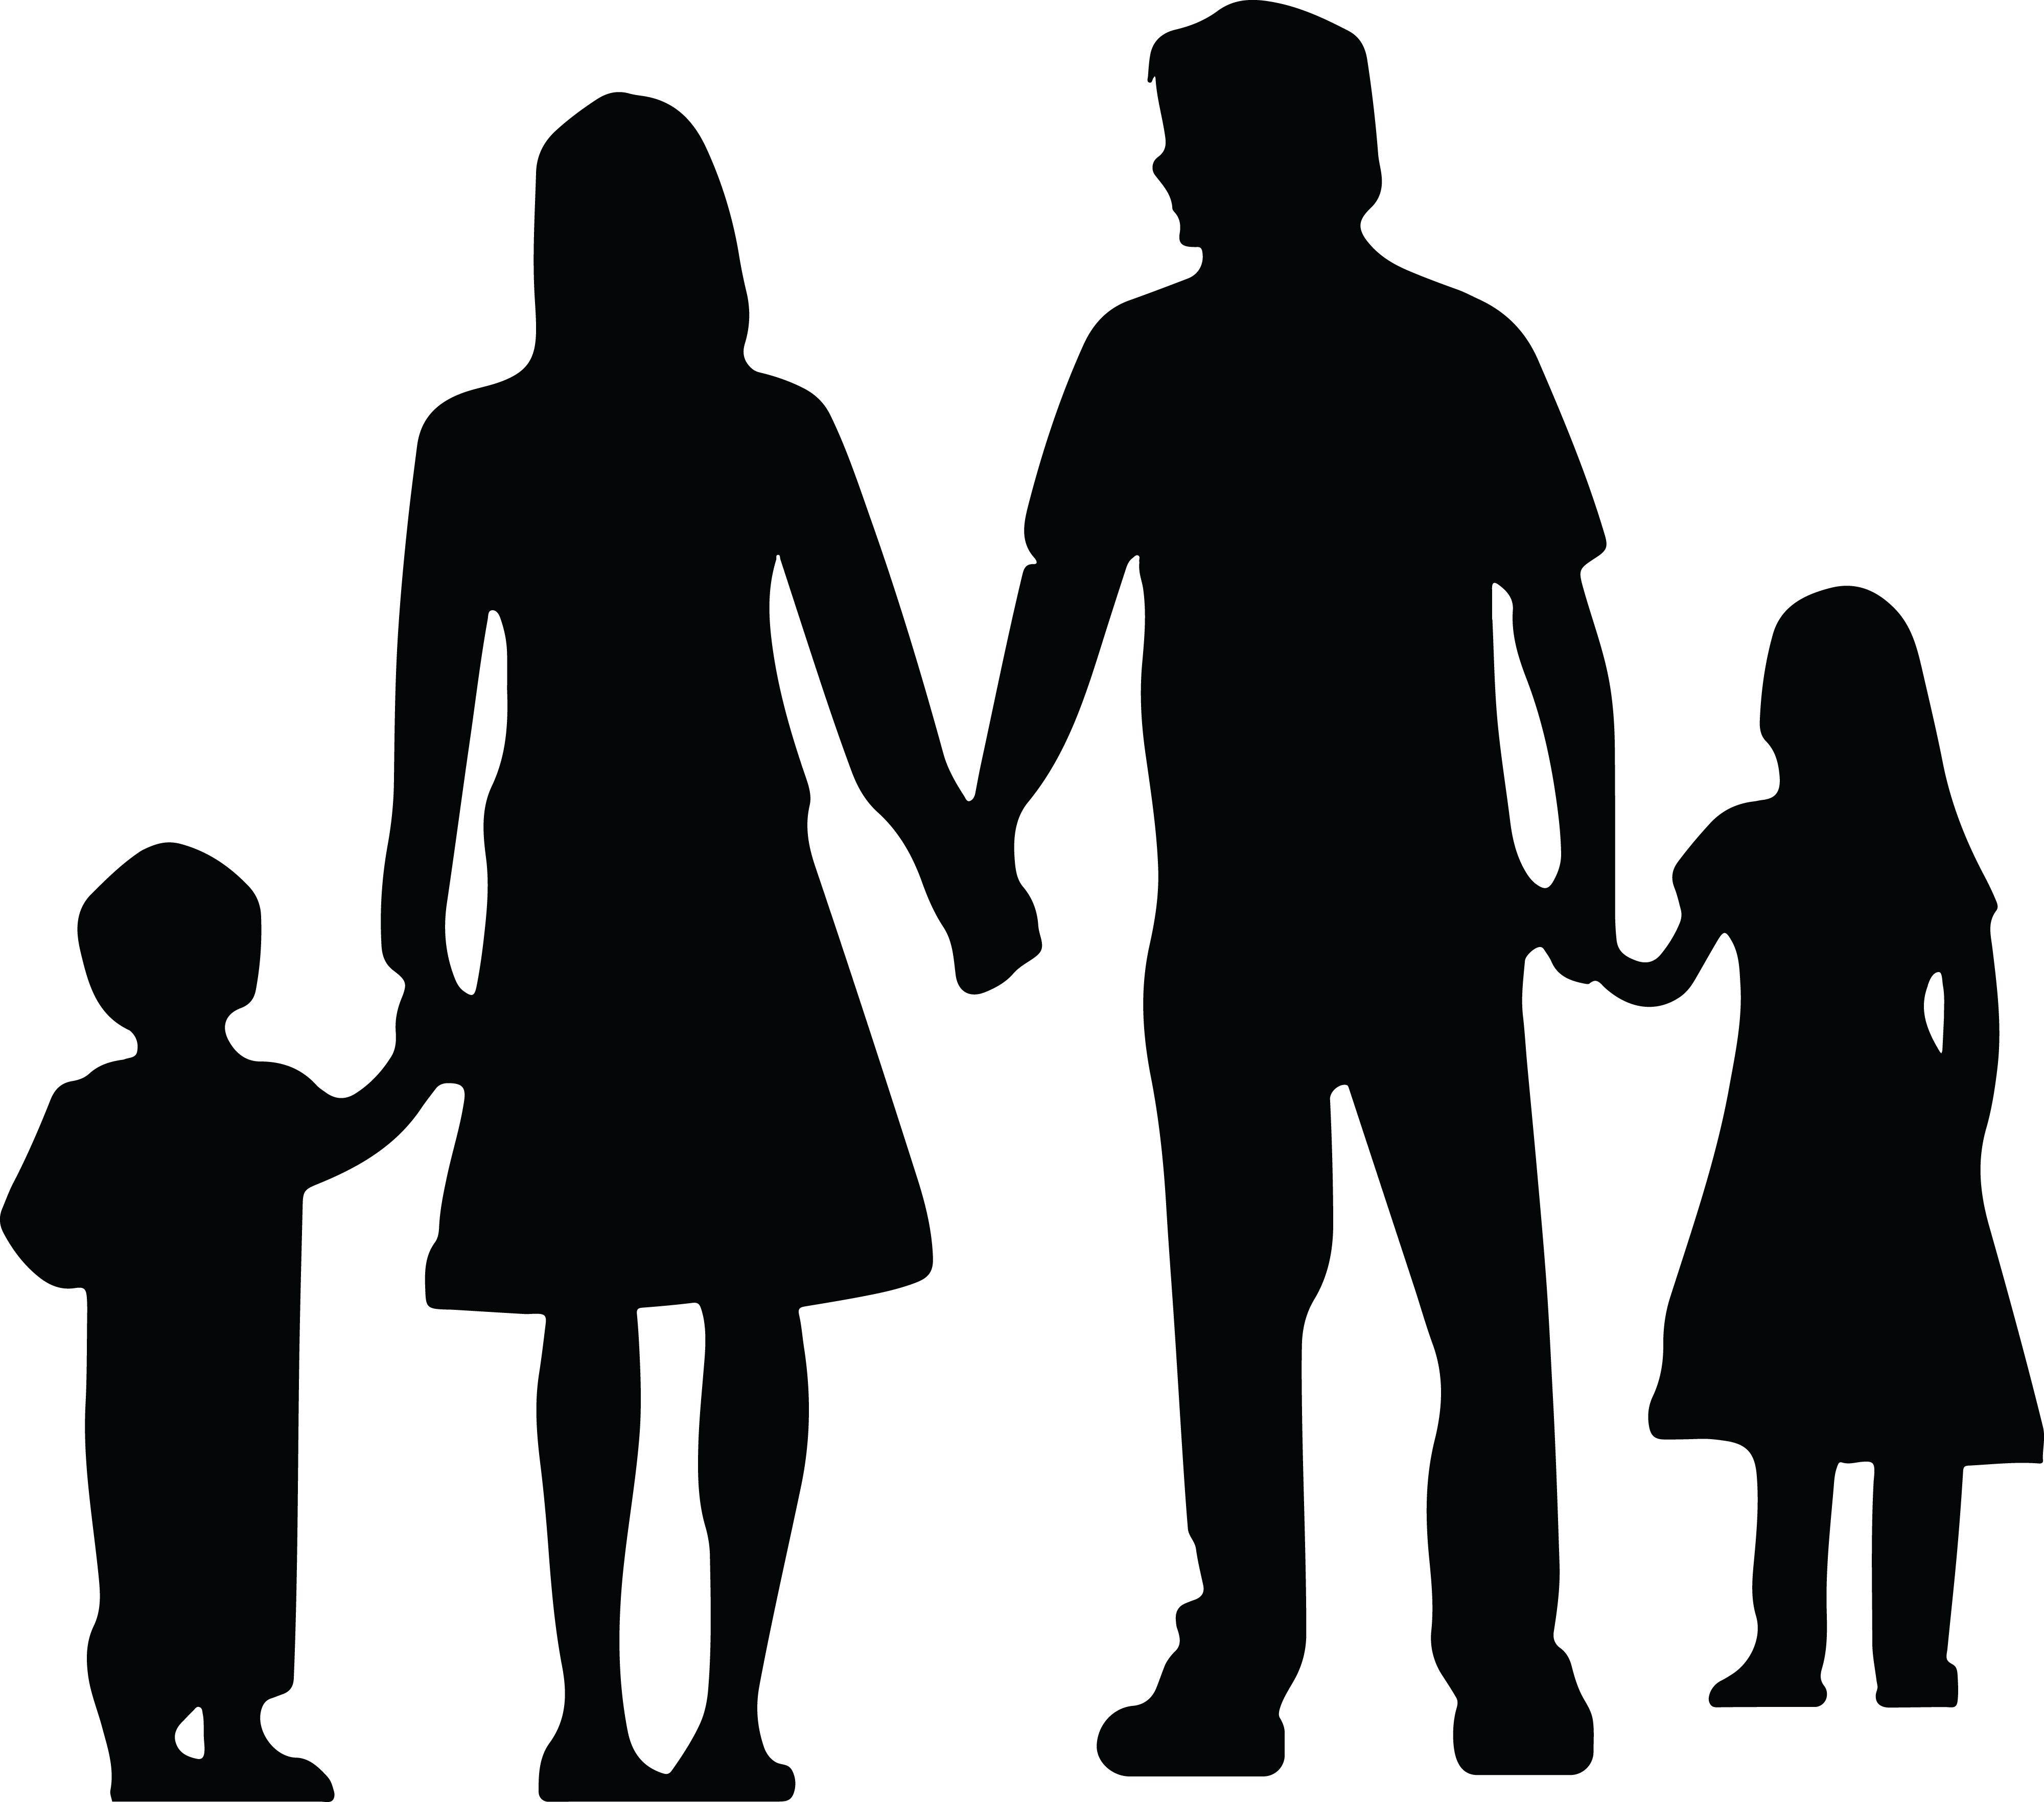 Hand in hand clipart vector transparent stock Silhouette People Holding Hands at GetDrawings.com | Free for ... vector transparent stock